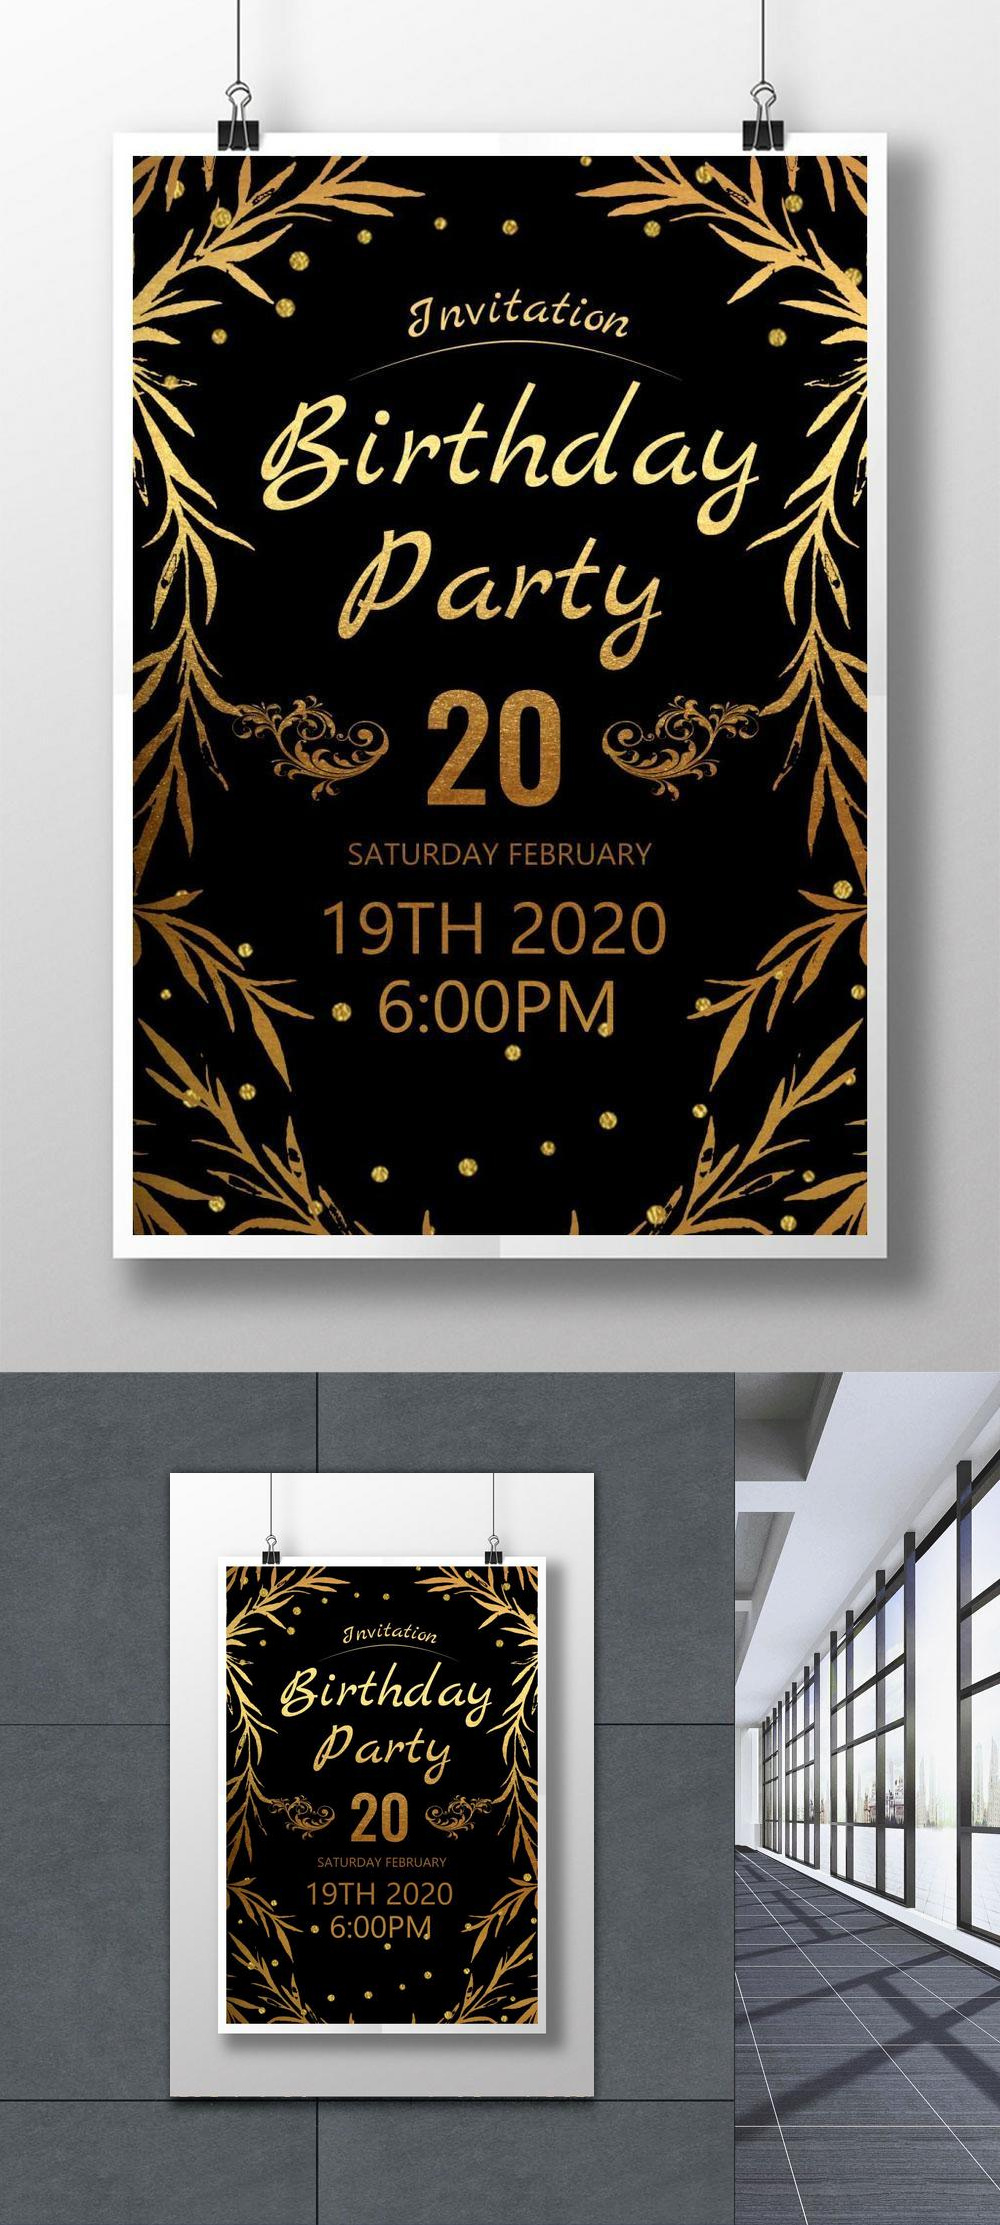 Blue gold atmosphere birthday invitation poster template image_picture free  download 401610257_lovepik.com